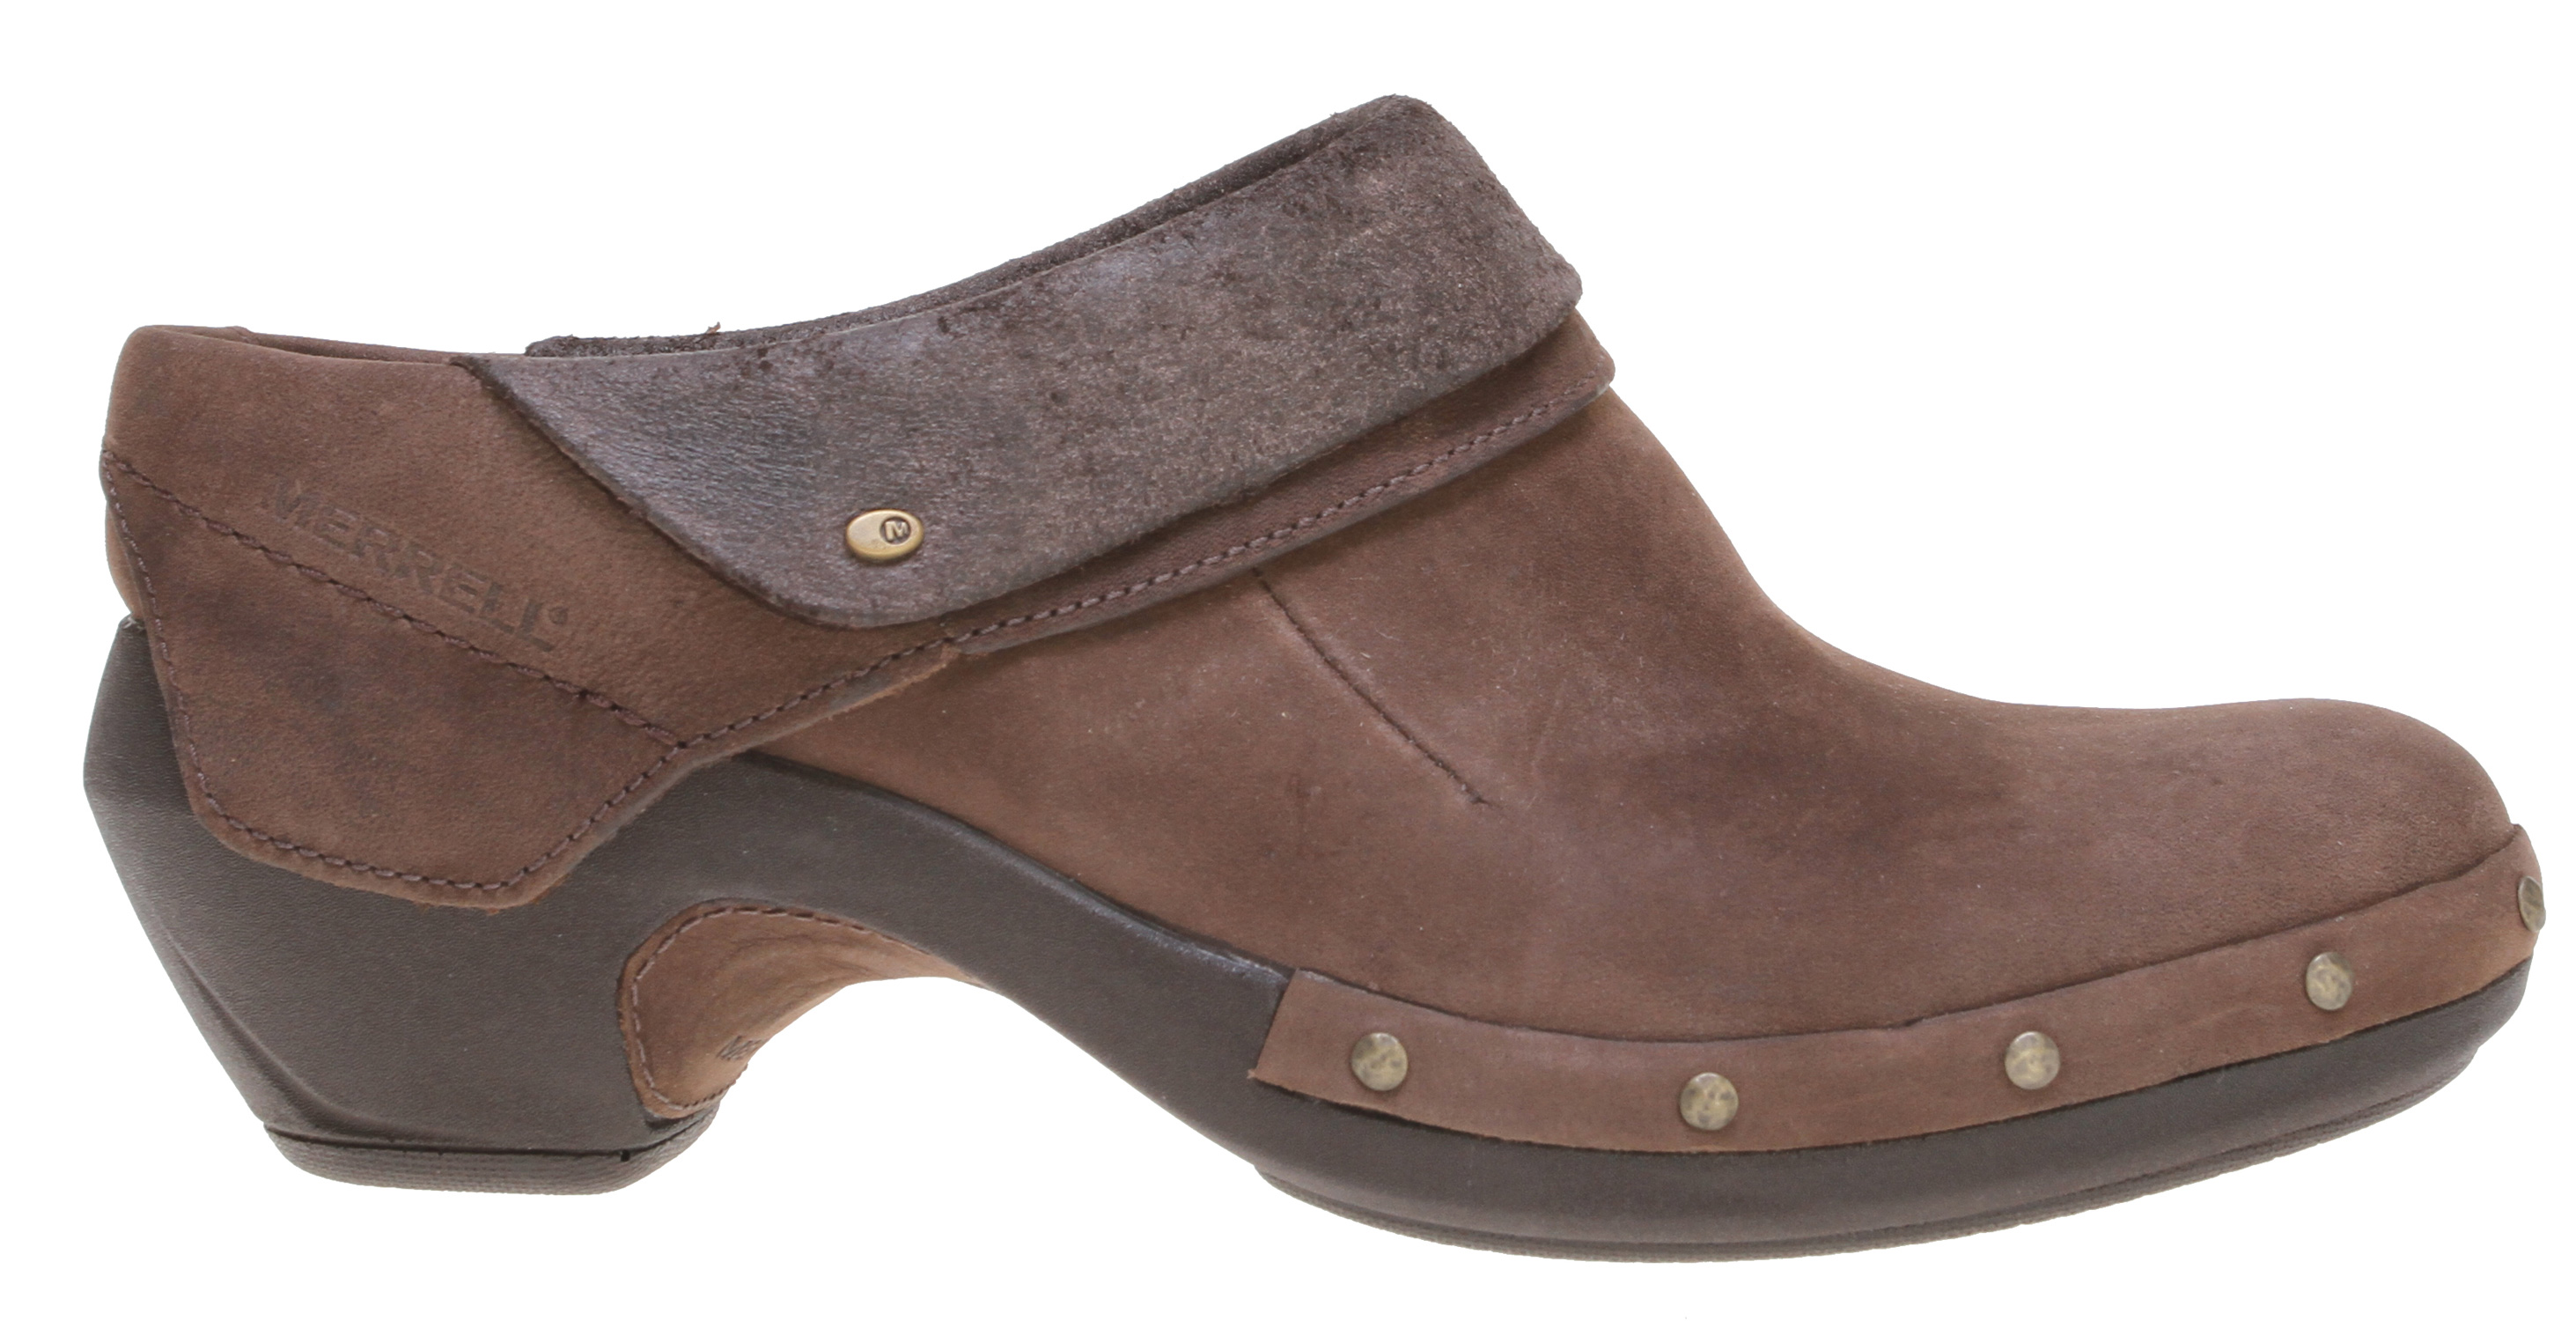 Sophistication and comfort meet at the intersection of your inspired life in our podiatrist-approved Luxe Mid clog. Accepted by the American Podiatric Medical Association, this premium oiled leather supports your day in style, with a breathable pigskin lining, molded arch support, lightweight durable midsole and air cushion in the heel.Key Features of the Merrell Luxe Wrap Shoes: Cement construction provides lightweight durability Oiled nubuck leather upper Pigskin lining for premium comfort and breathability Pigskin covered footbed molded nylon arch shank Lightweight dual density PU midsole for durability Merrell air cushion in the heel absorbs shock and adds stability Merrell Luxe Sole/Sticky Rubber - $86.95